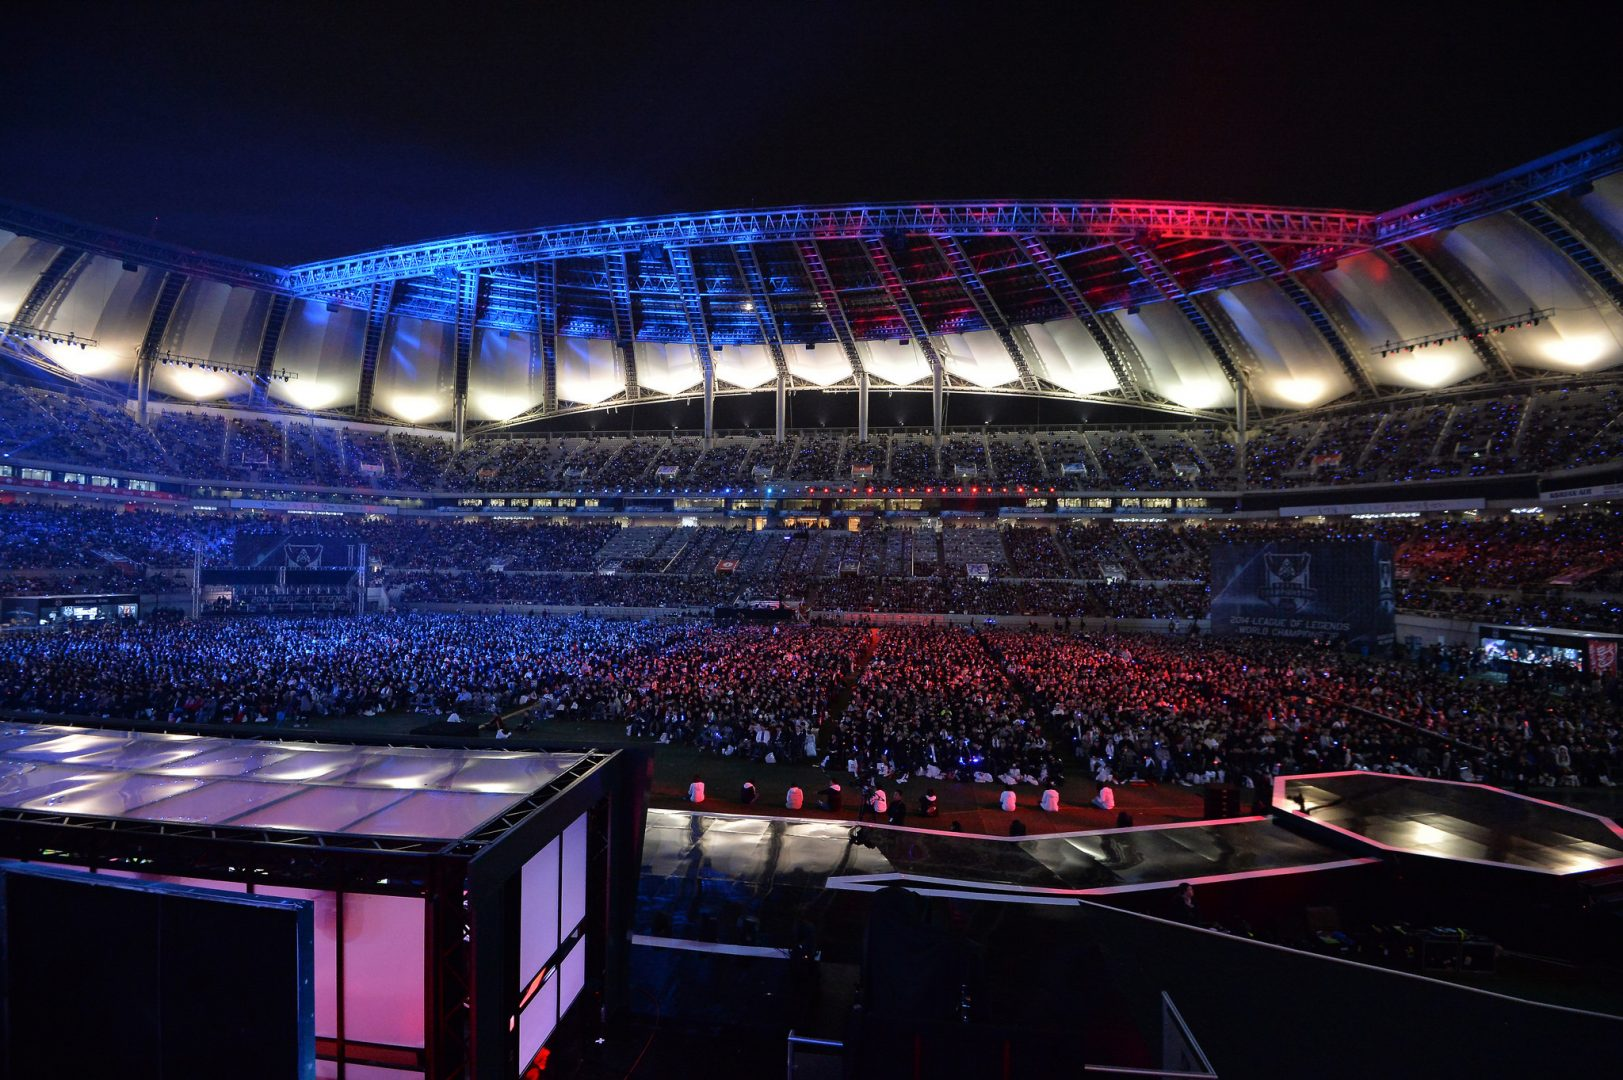 League of Legends World Finals will come to Europe this year